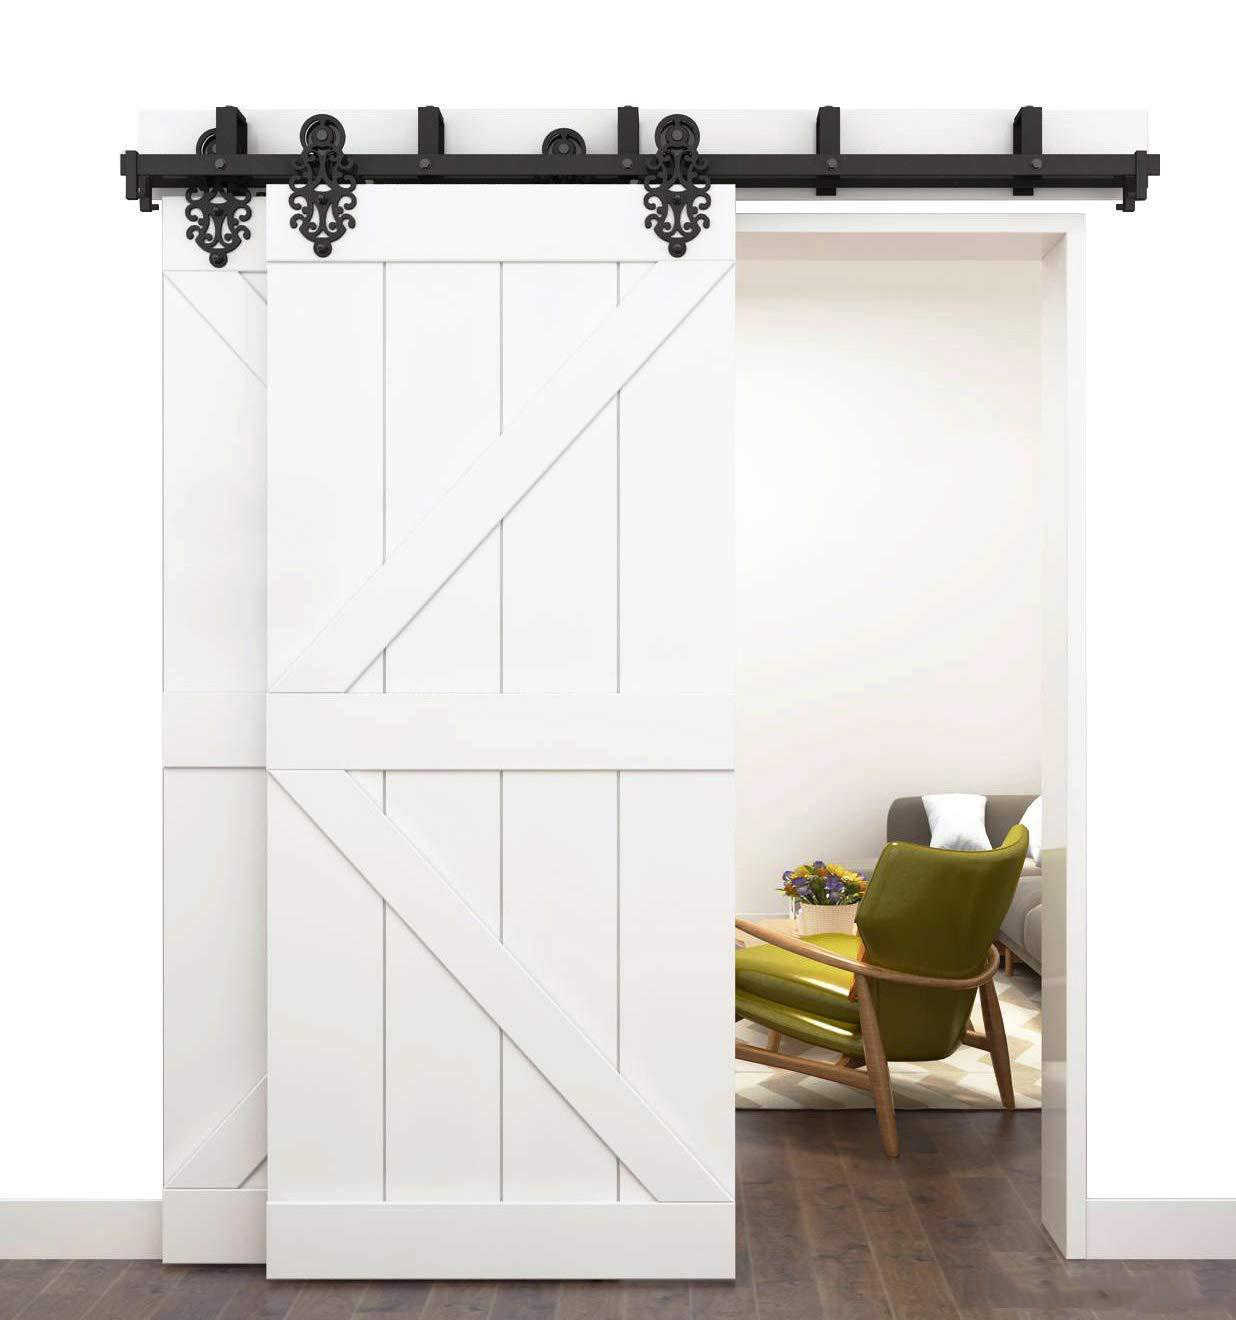 Wholesale Double Sliding Barn Door Track Buy Cheap In Bulk From China Suppliers With Coupon Dhgate Com